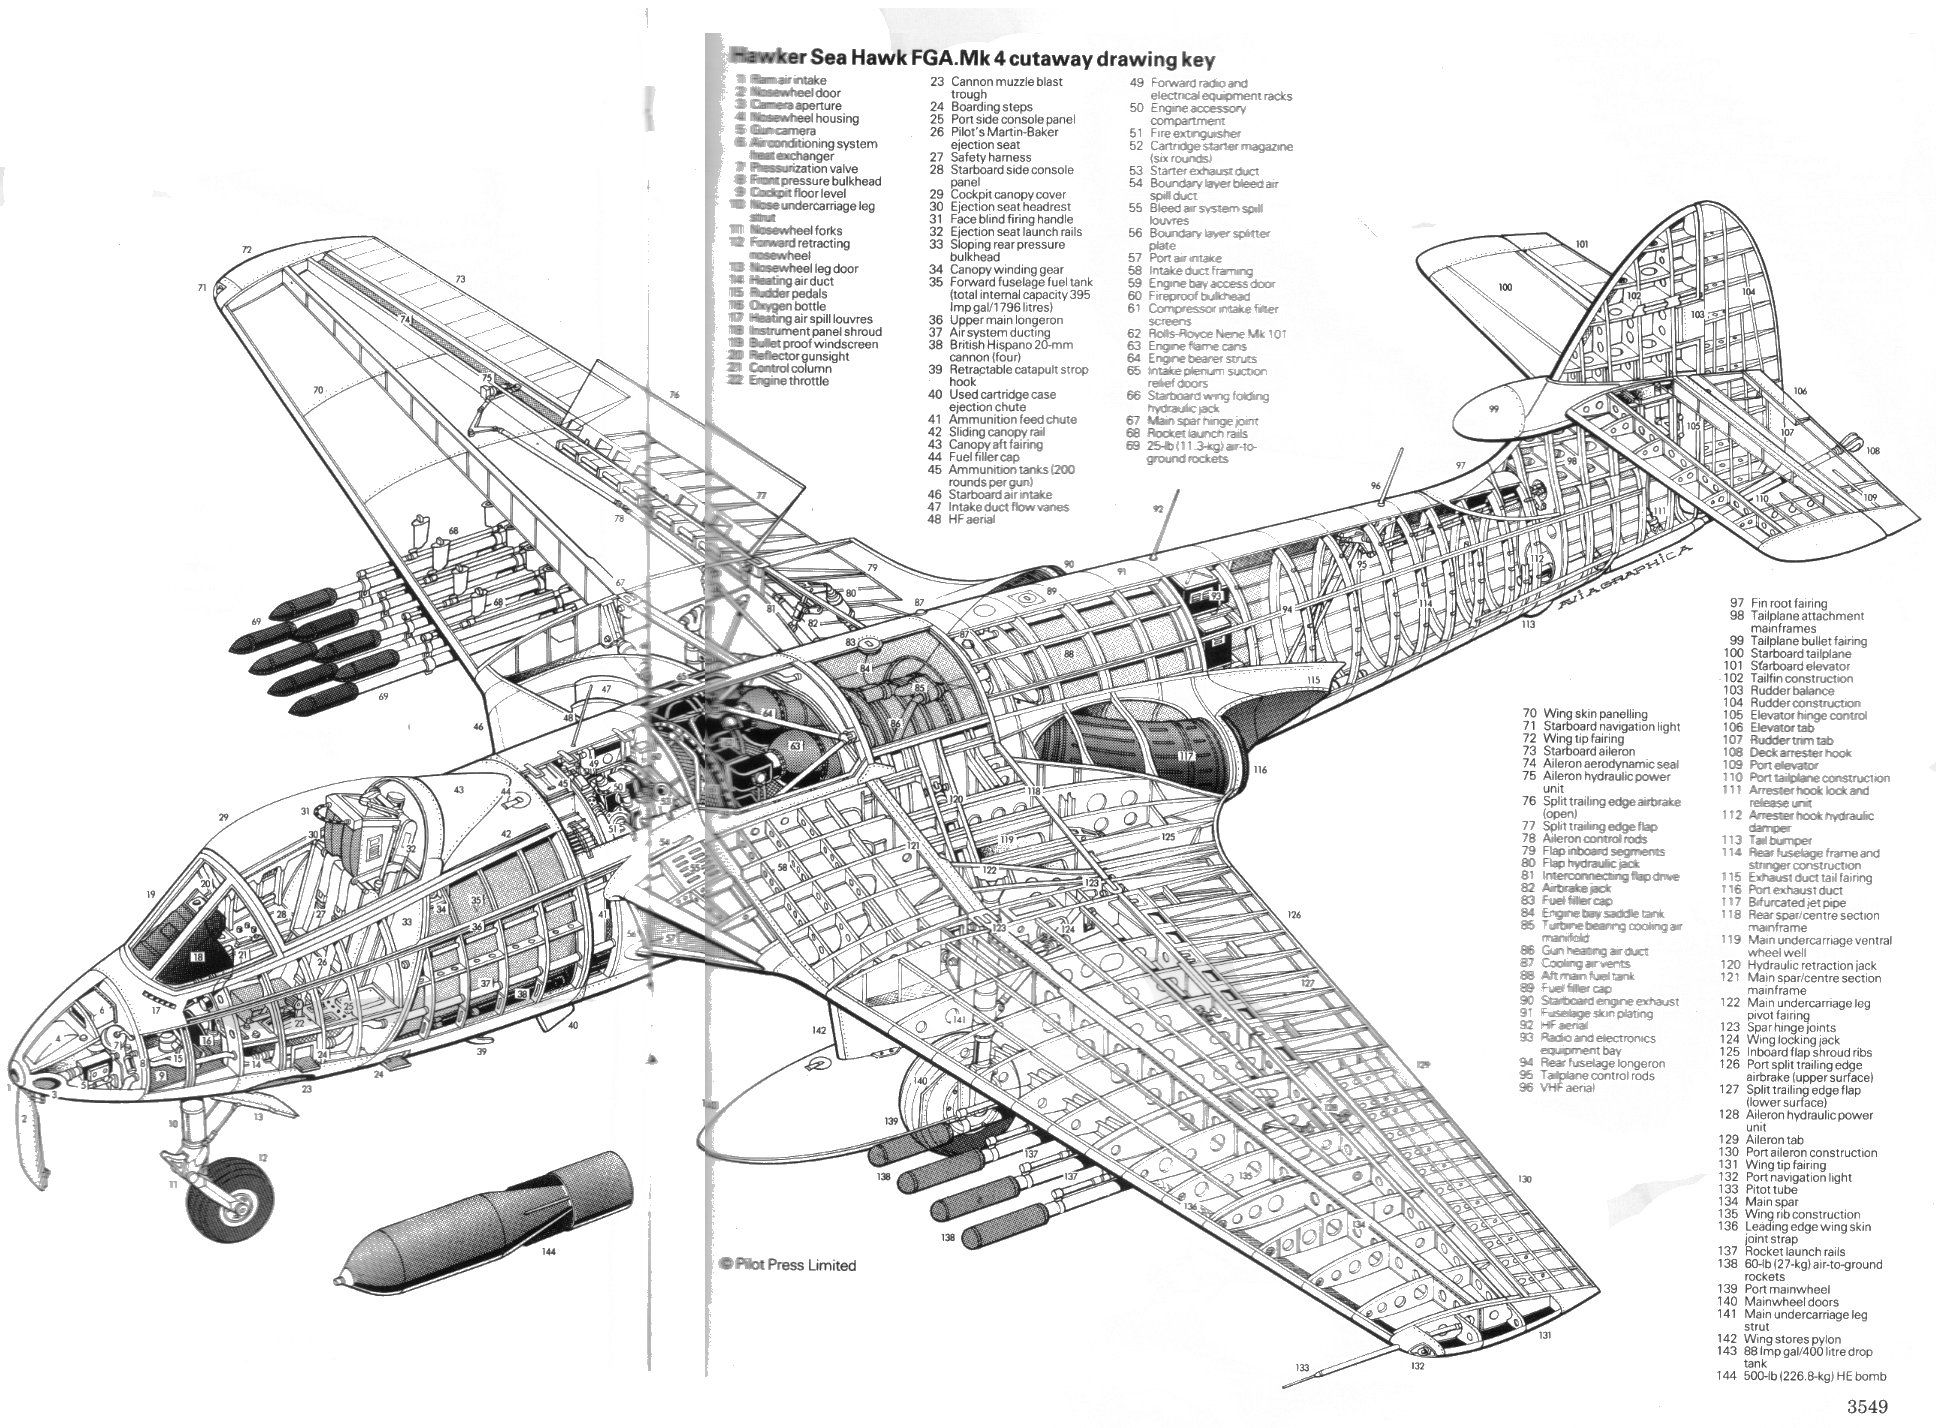 Hawker Sea Hawk Fga Mk4 Cutaway Drawing Key